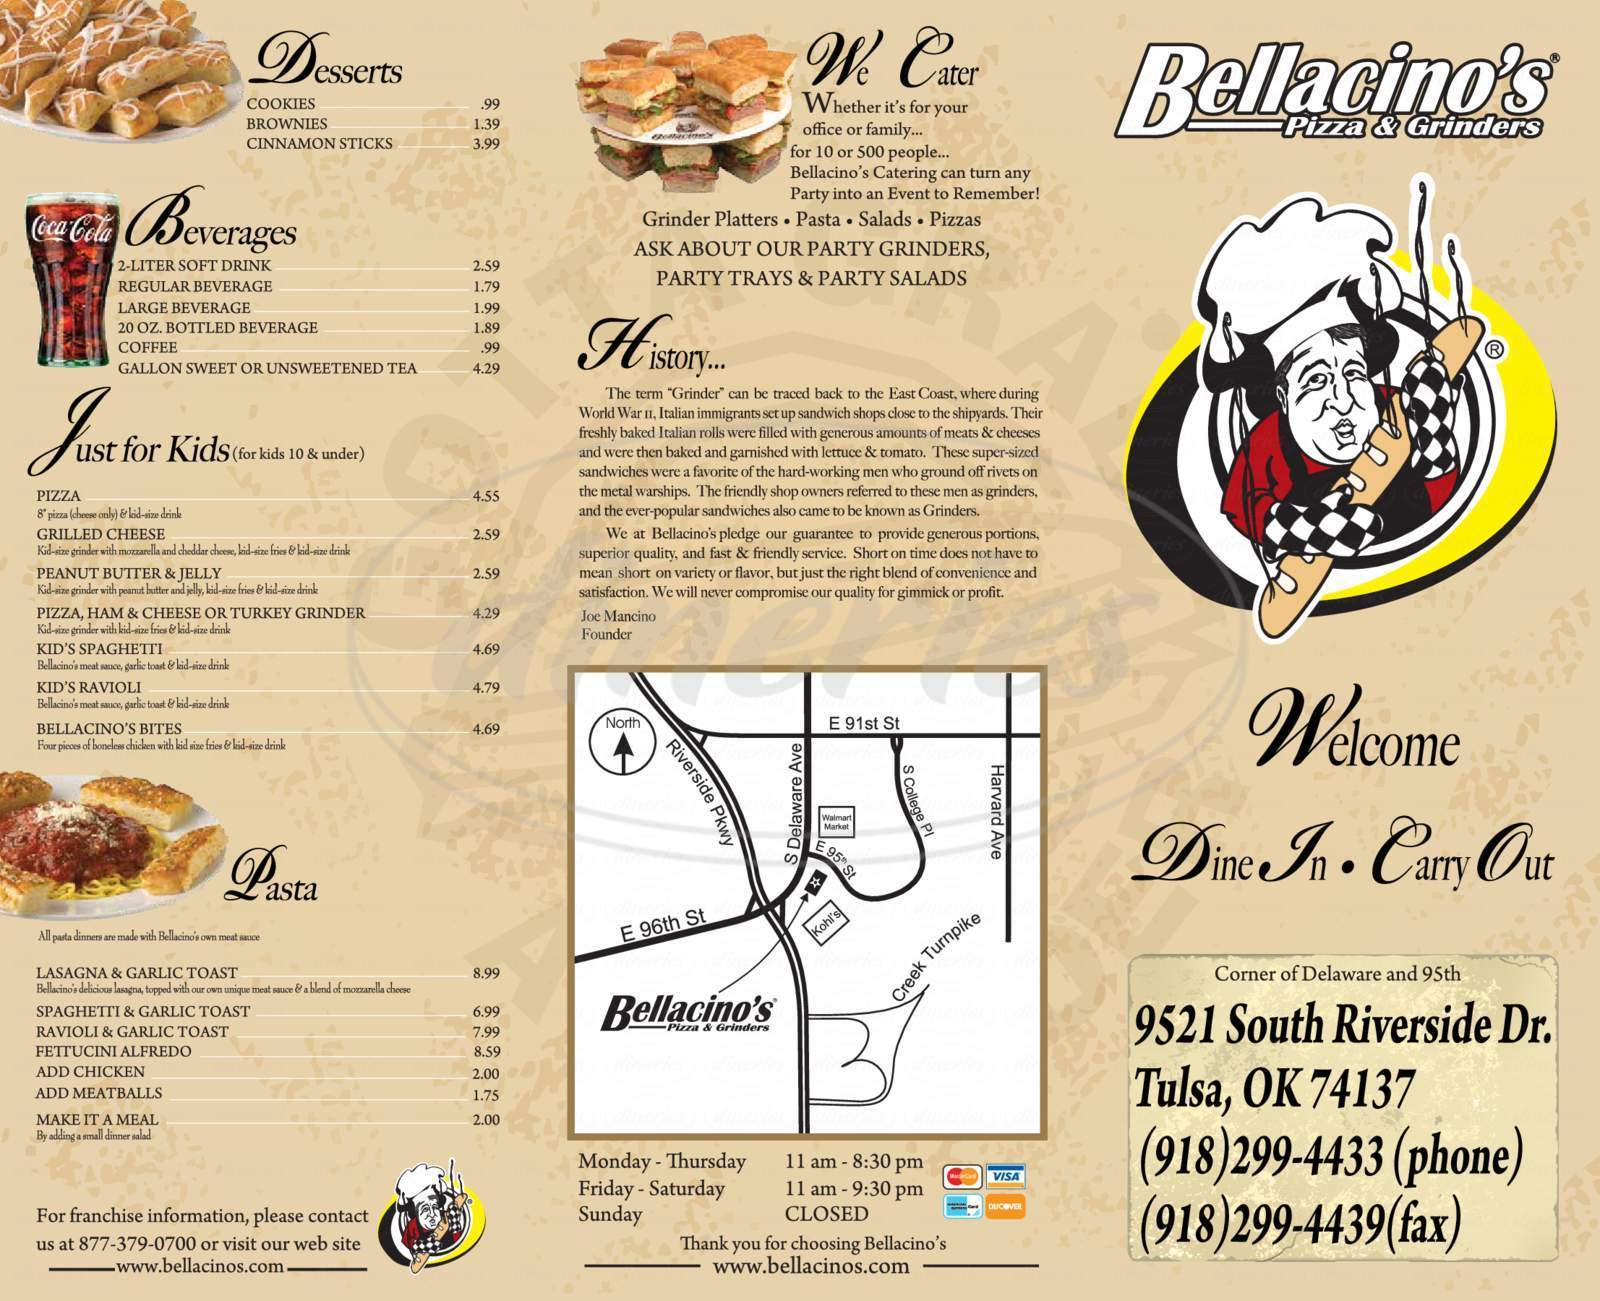 menu for Bellacinos Pizza & Grinder